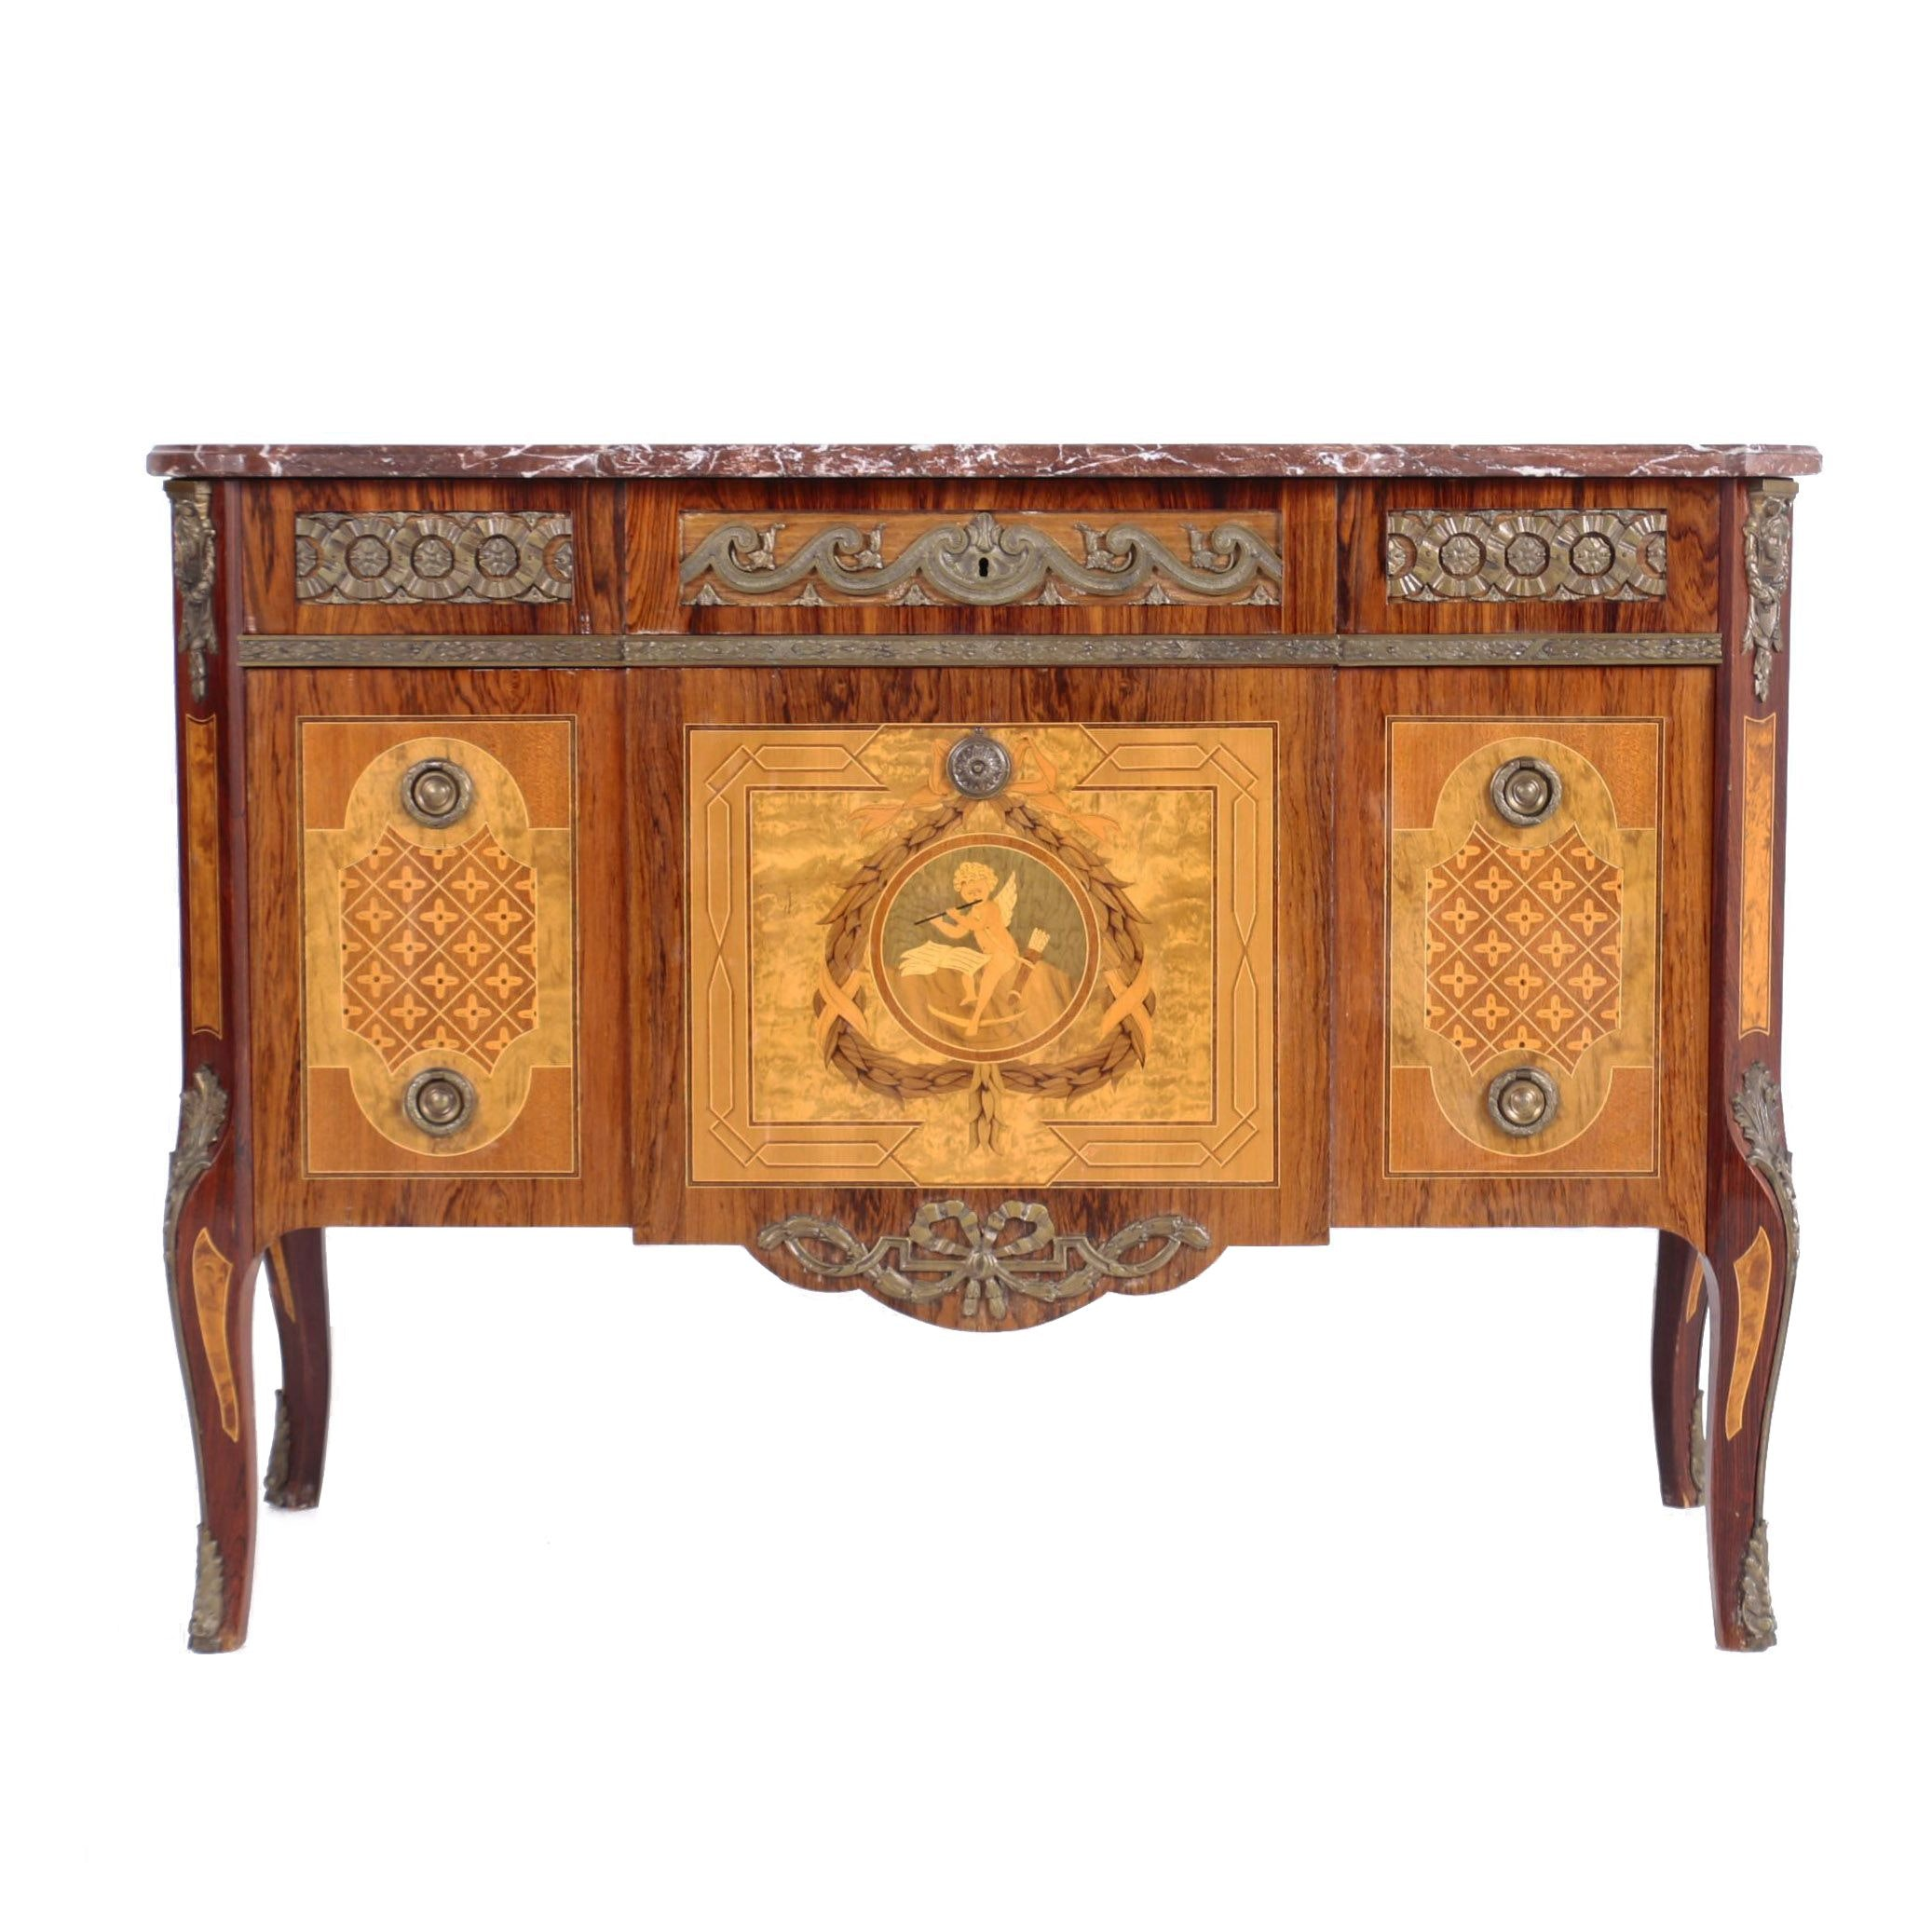 Louis XVI Style Brass-Mounted Kingwood and Marquetry Commode, 20th Century